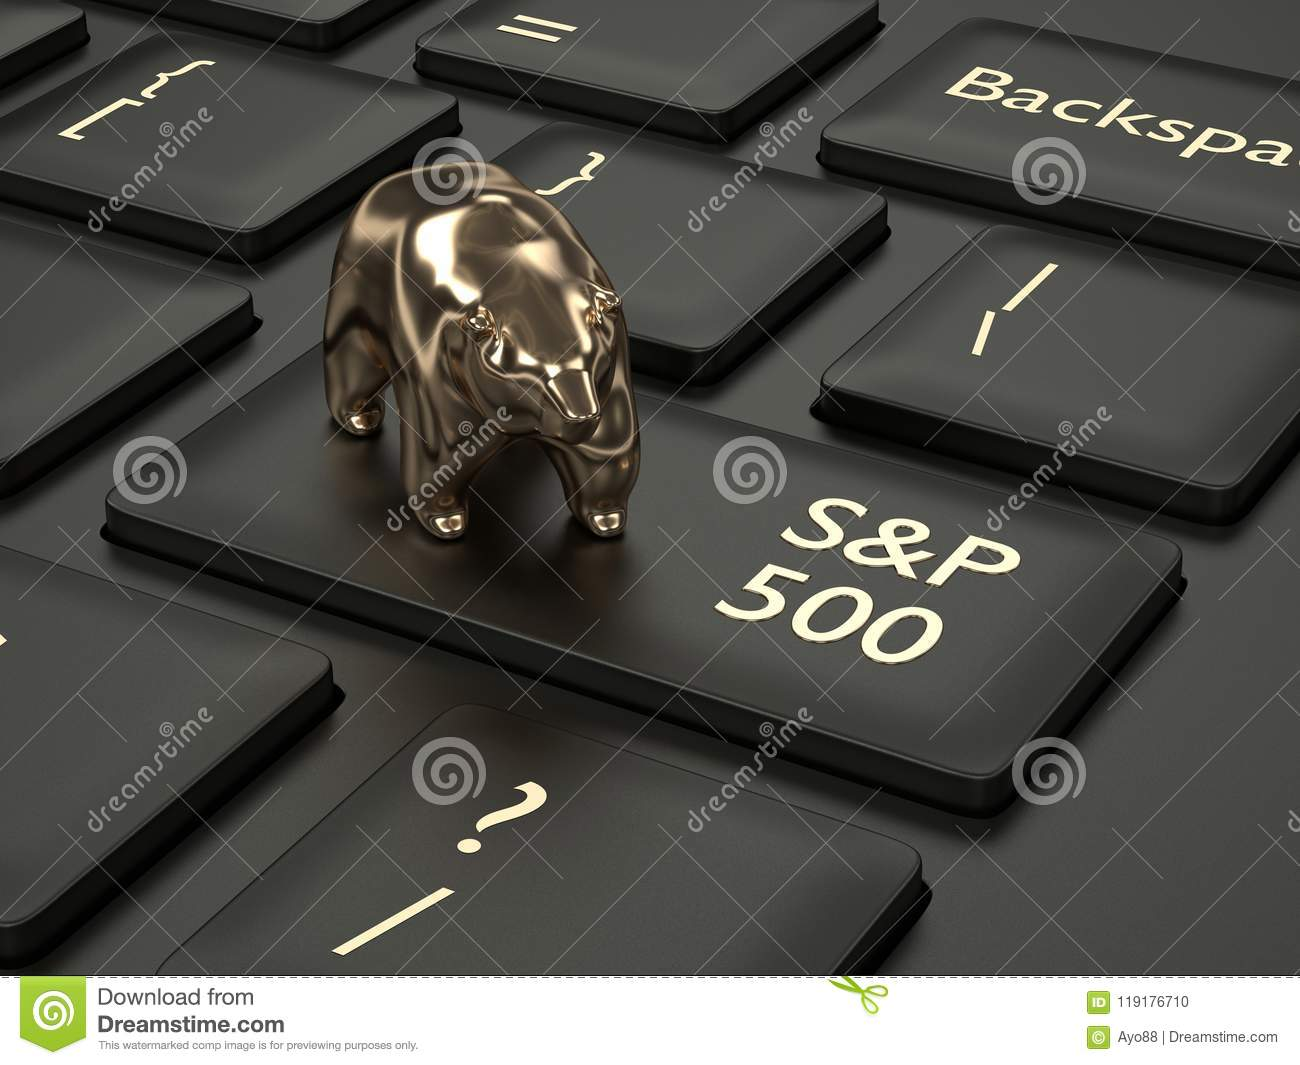 3d Render Of Computer Keyboard With Bear And Sp 500 Index Stock